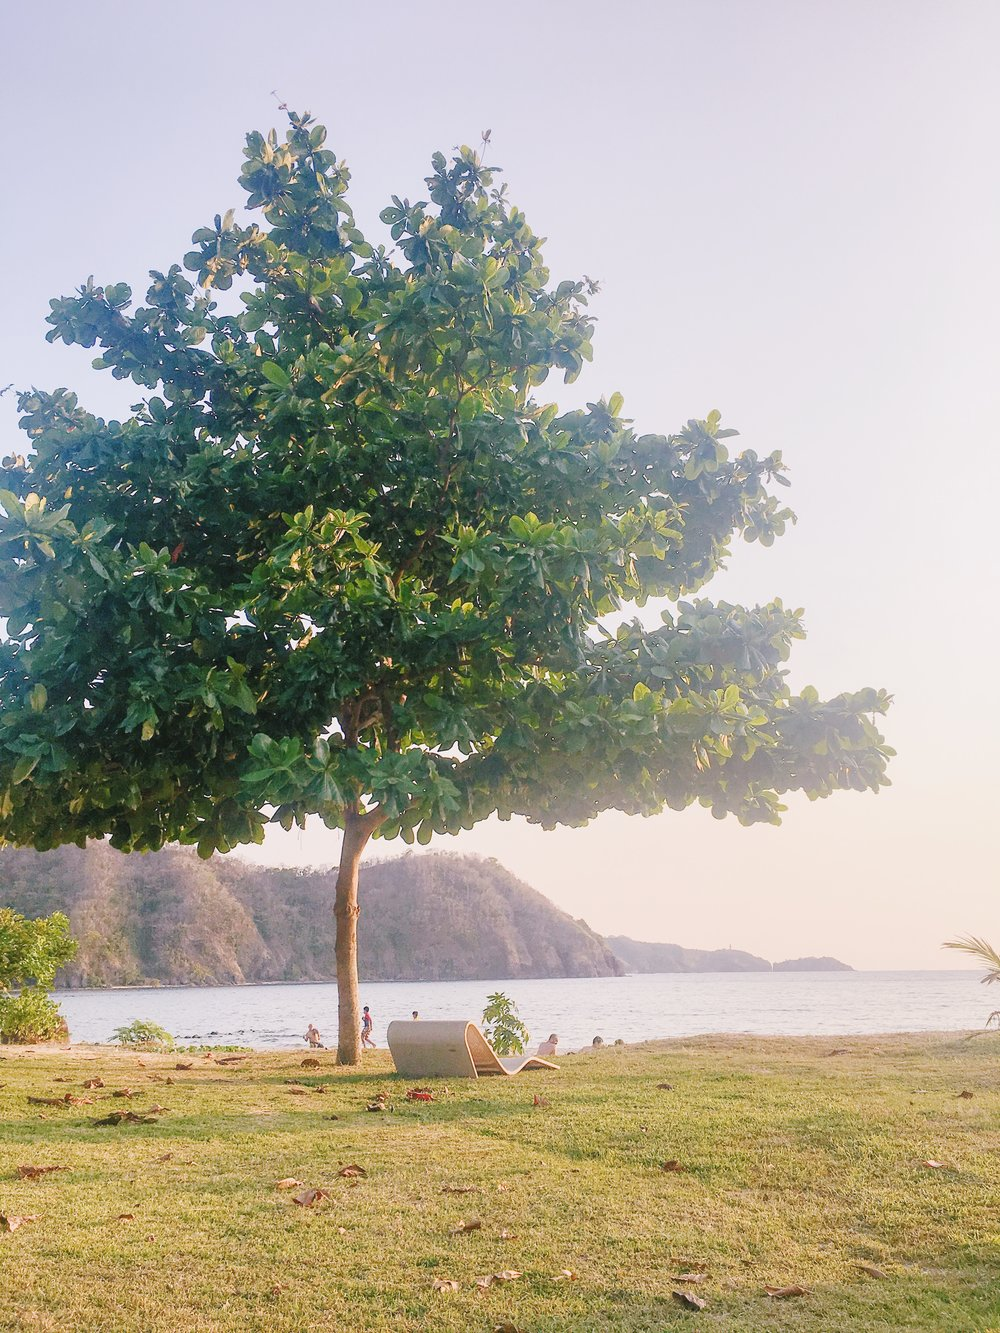 - If I am to come back here, you know where to find me. I like how that chair is located under the tree. What a perfect spot to bask under the sun. I can imagine myself listening to good music while reading a good book. Just the thought of it makes me excited.